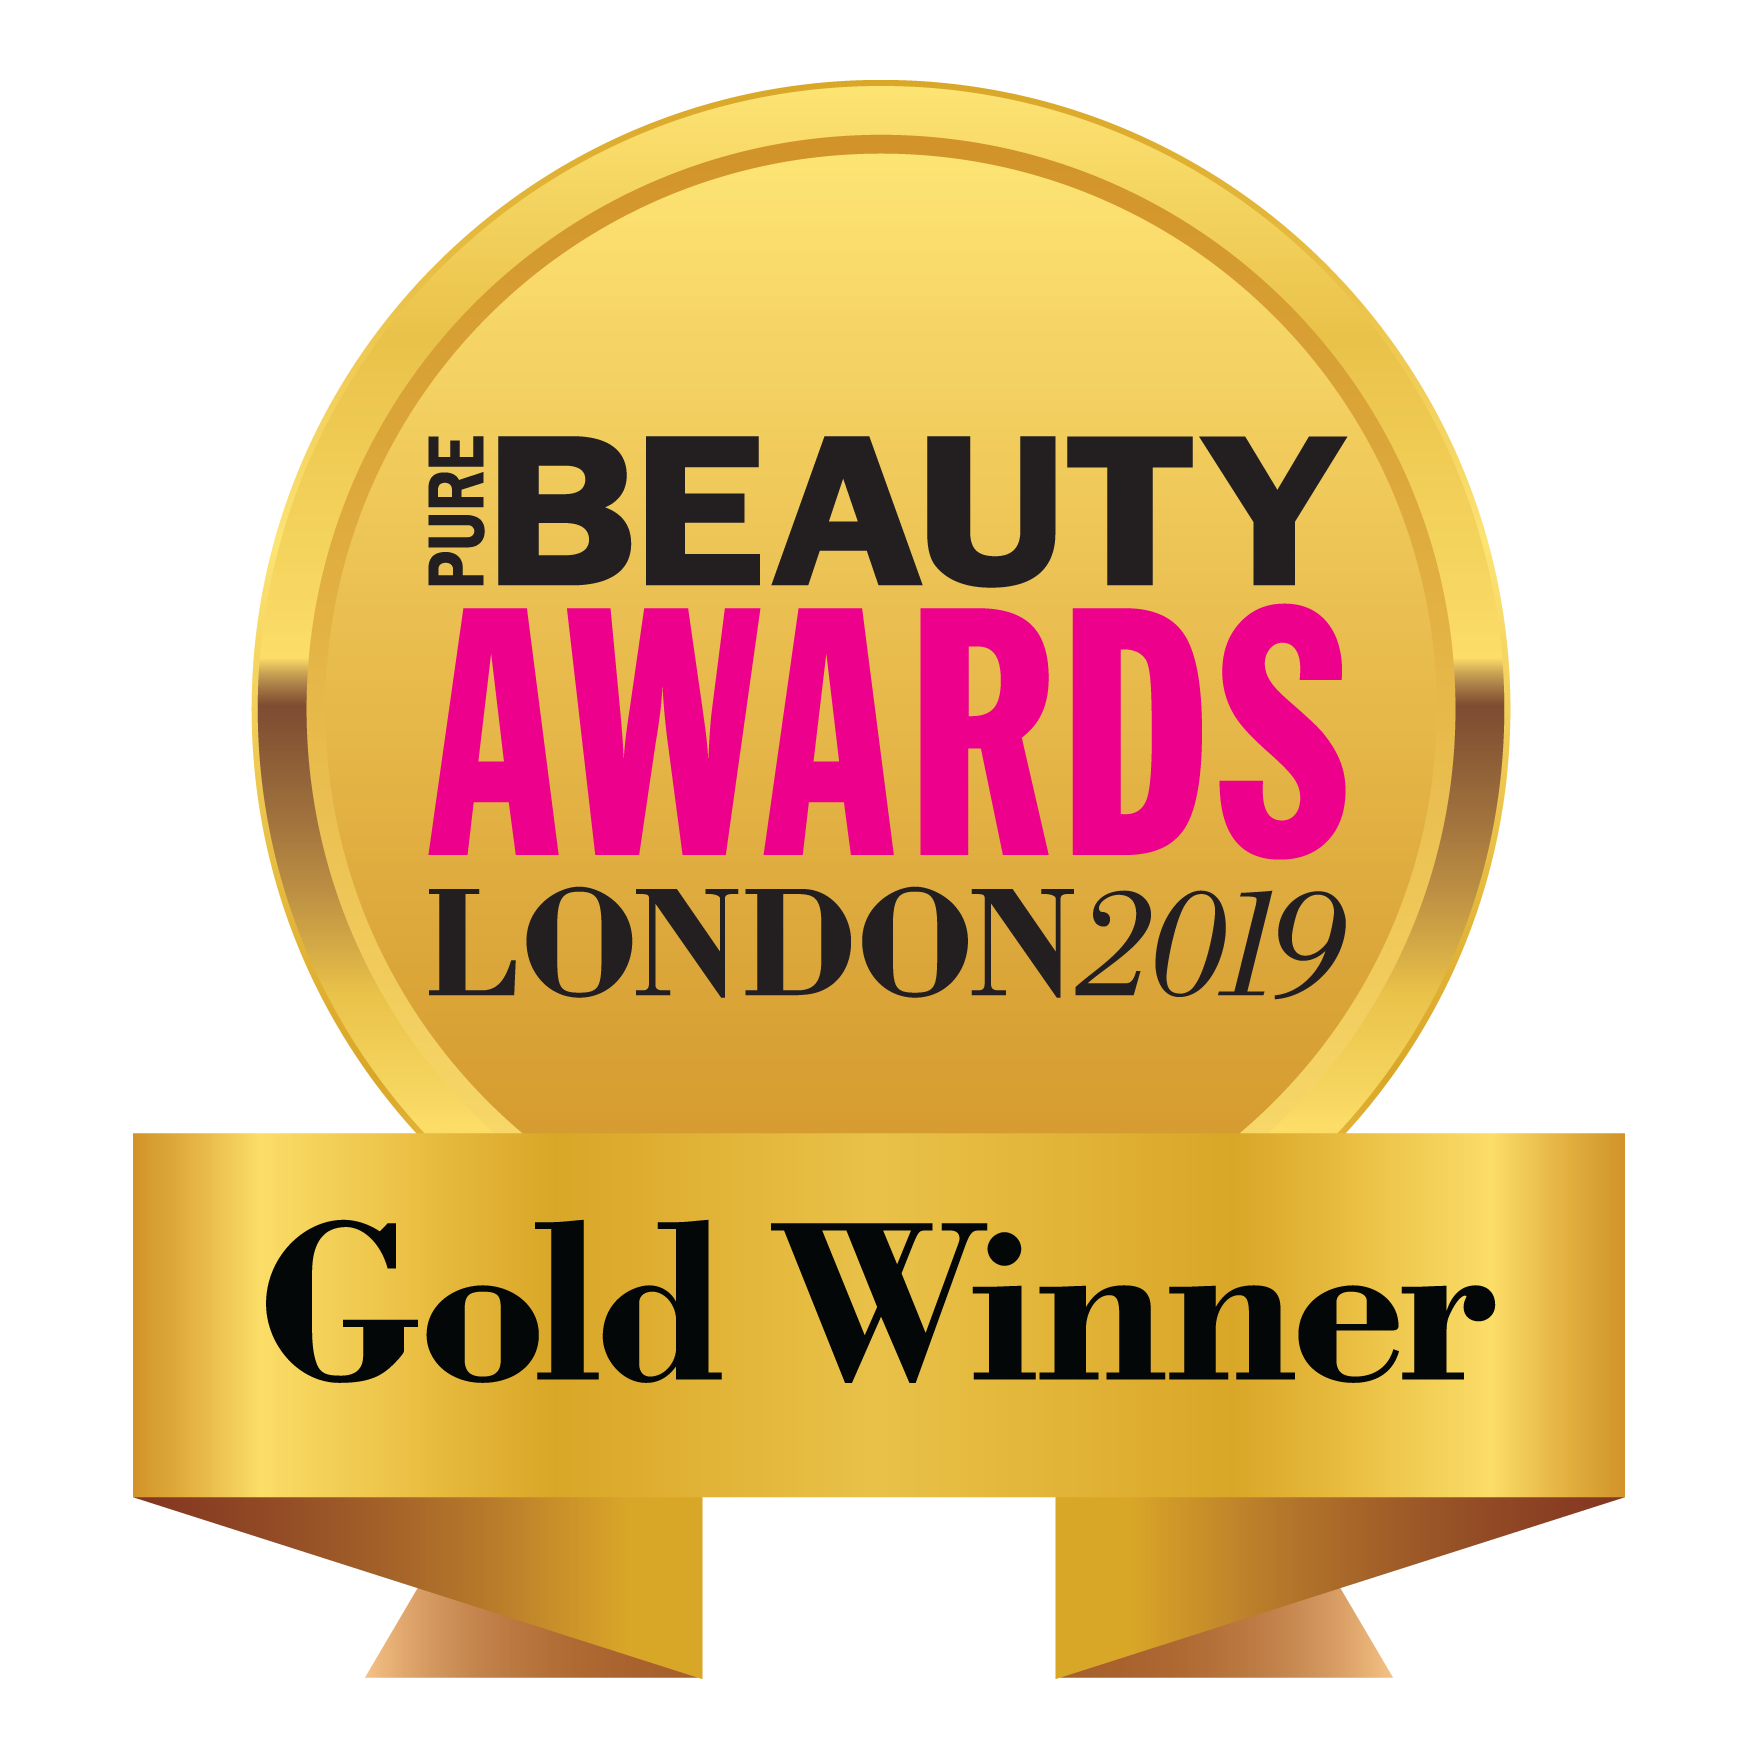 Pure Beauty Awards London 2019 Gold Winner